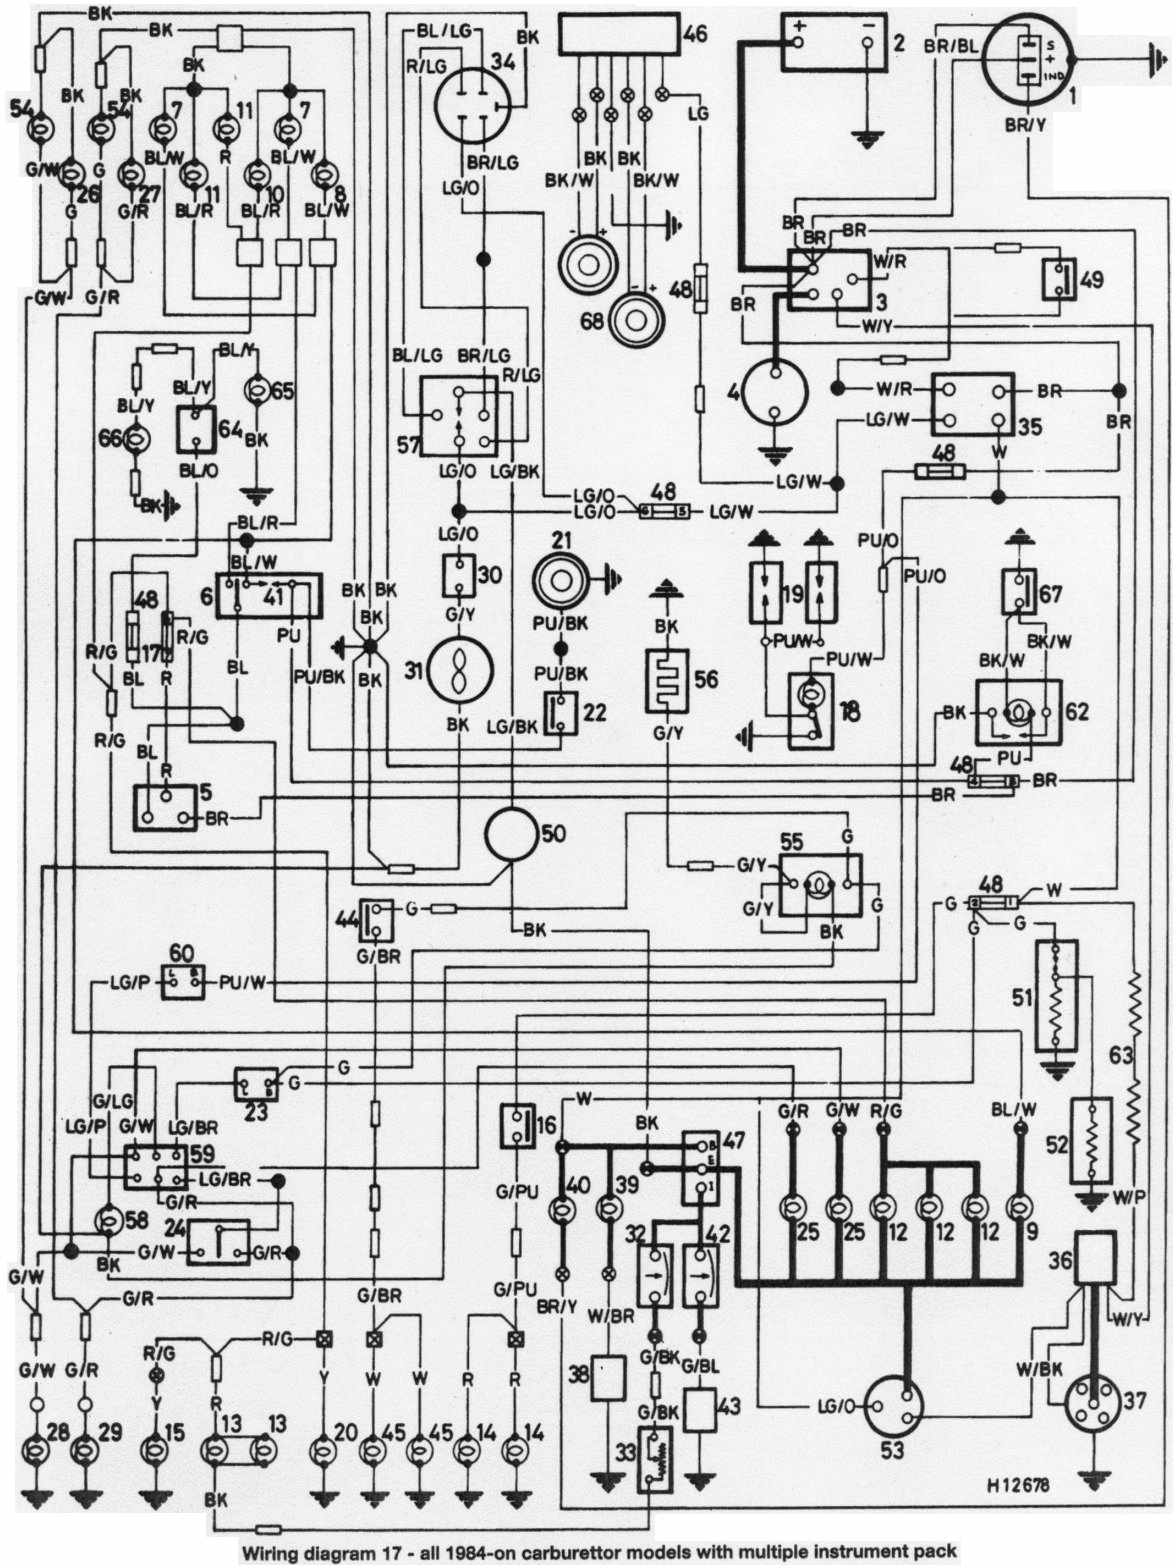 wiring diagram of 1984 onwards all mini series with multiple instrument pack?t=1508499130 mini car manuals, wiring diagrams pdf & fault codes morris minor wiring diagram pdf at soozxer.org